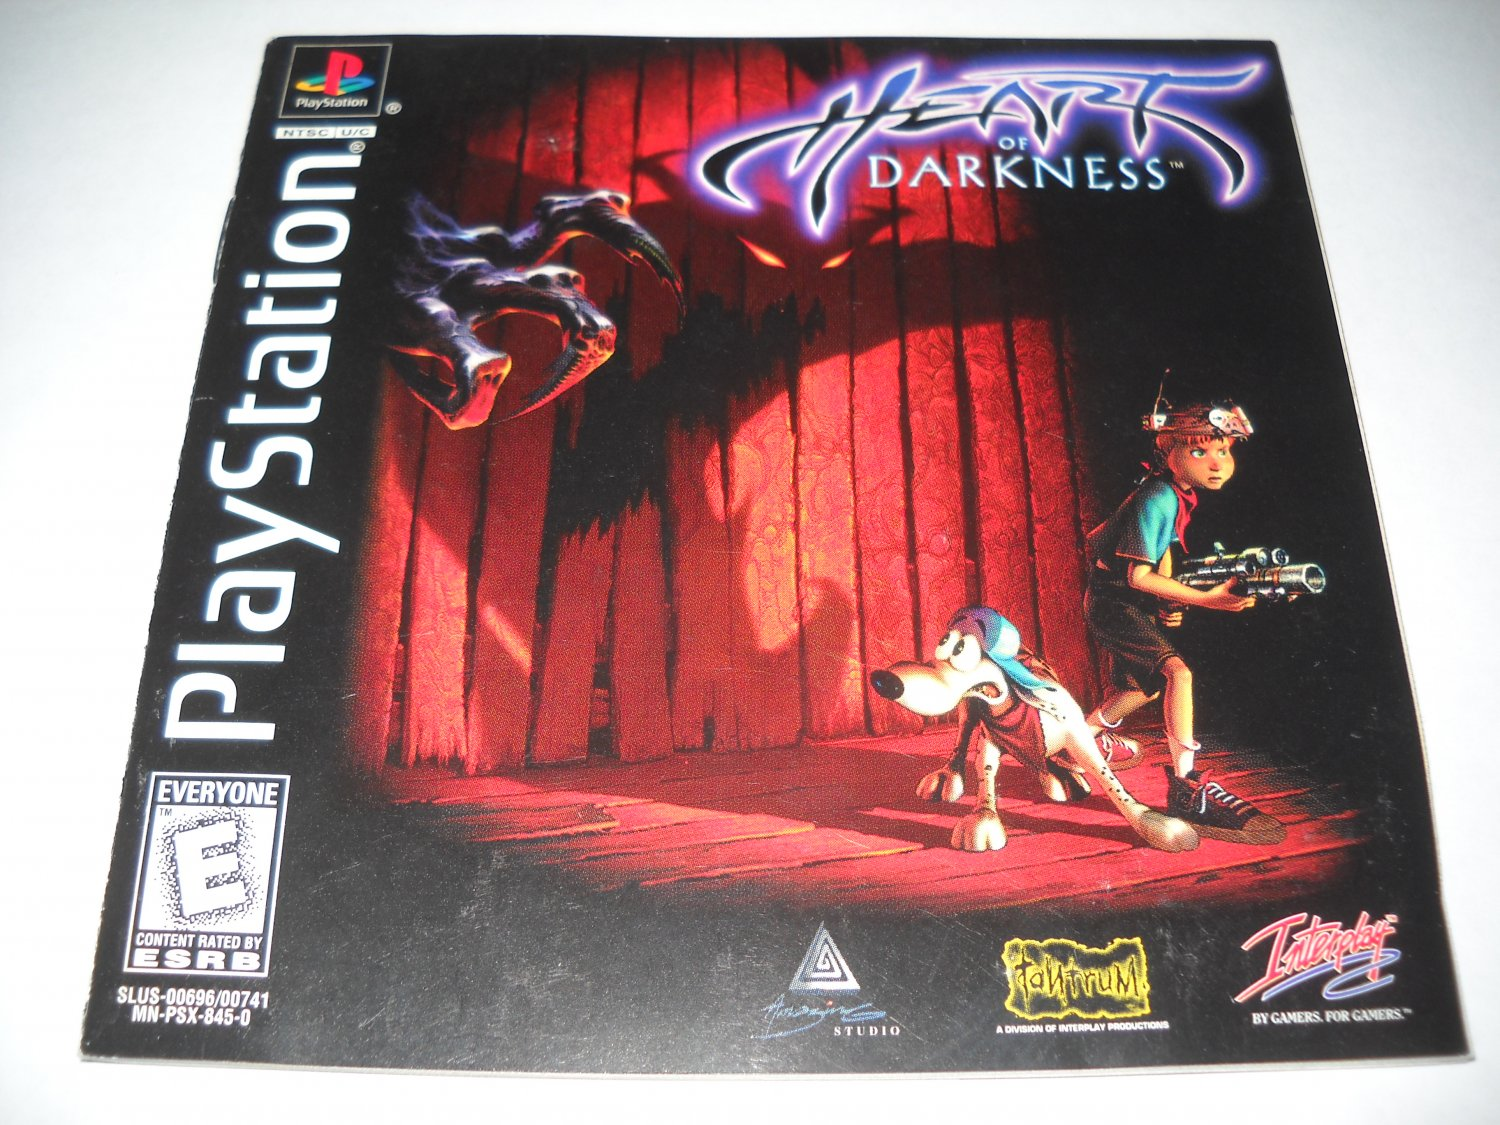 Manual ONLY ~ Heart of Darkness - Instruction Booklet - Ps1, Playstation 1